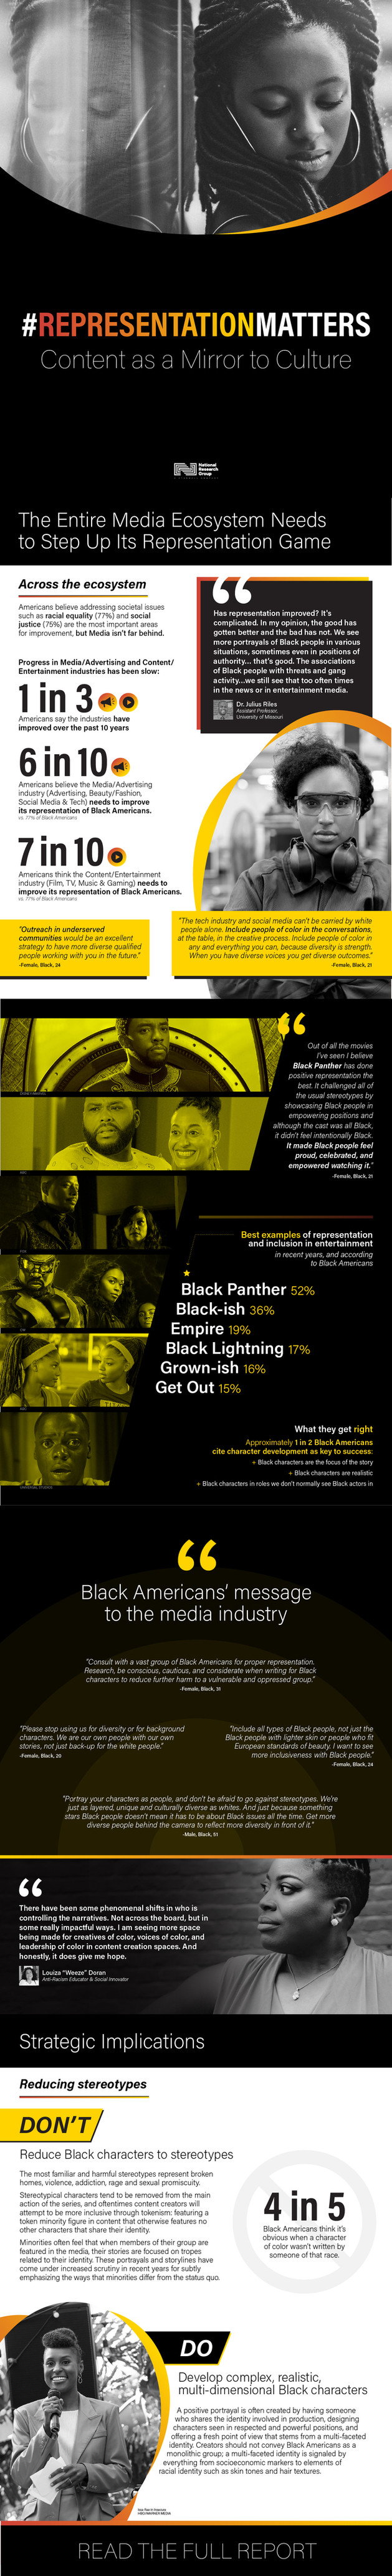 #RepresentationMatters Content as a Mirror to Culture